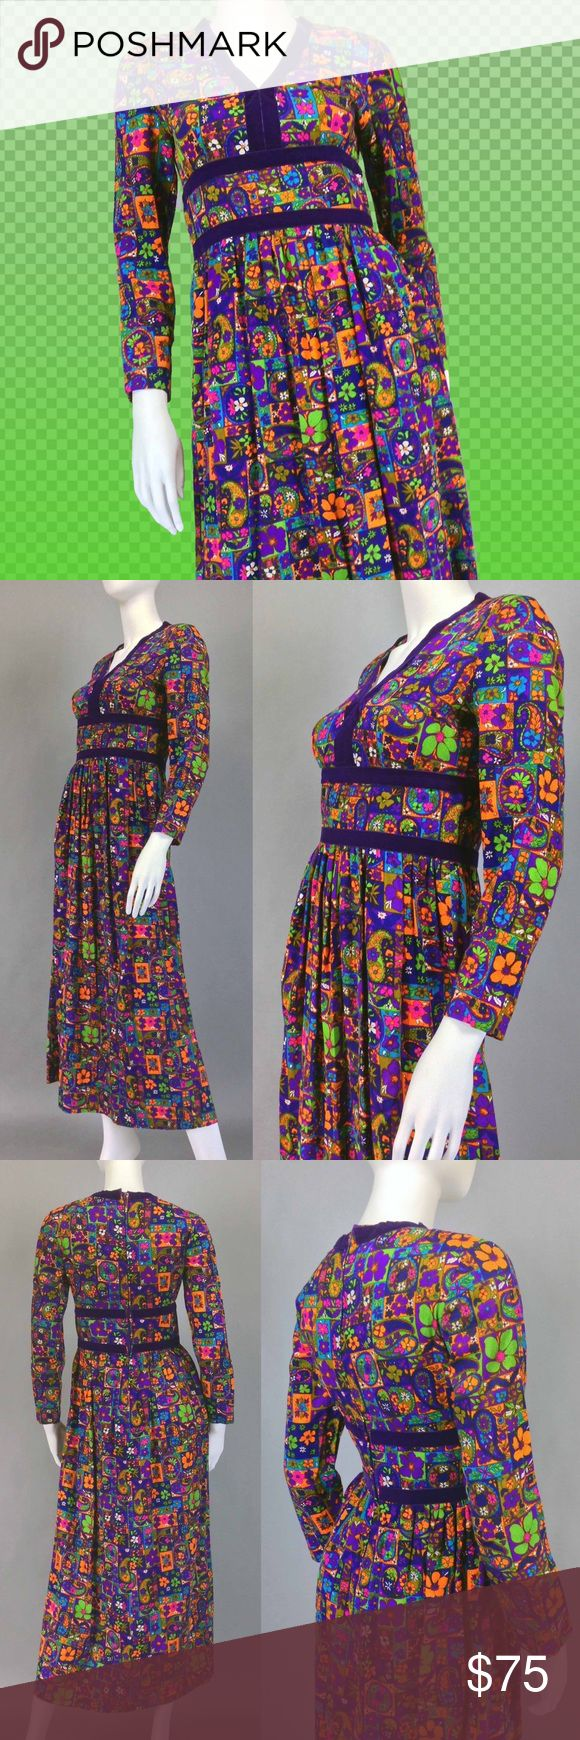 """VINTAGE DRESS 